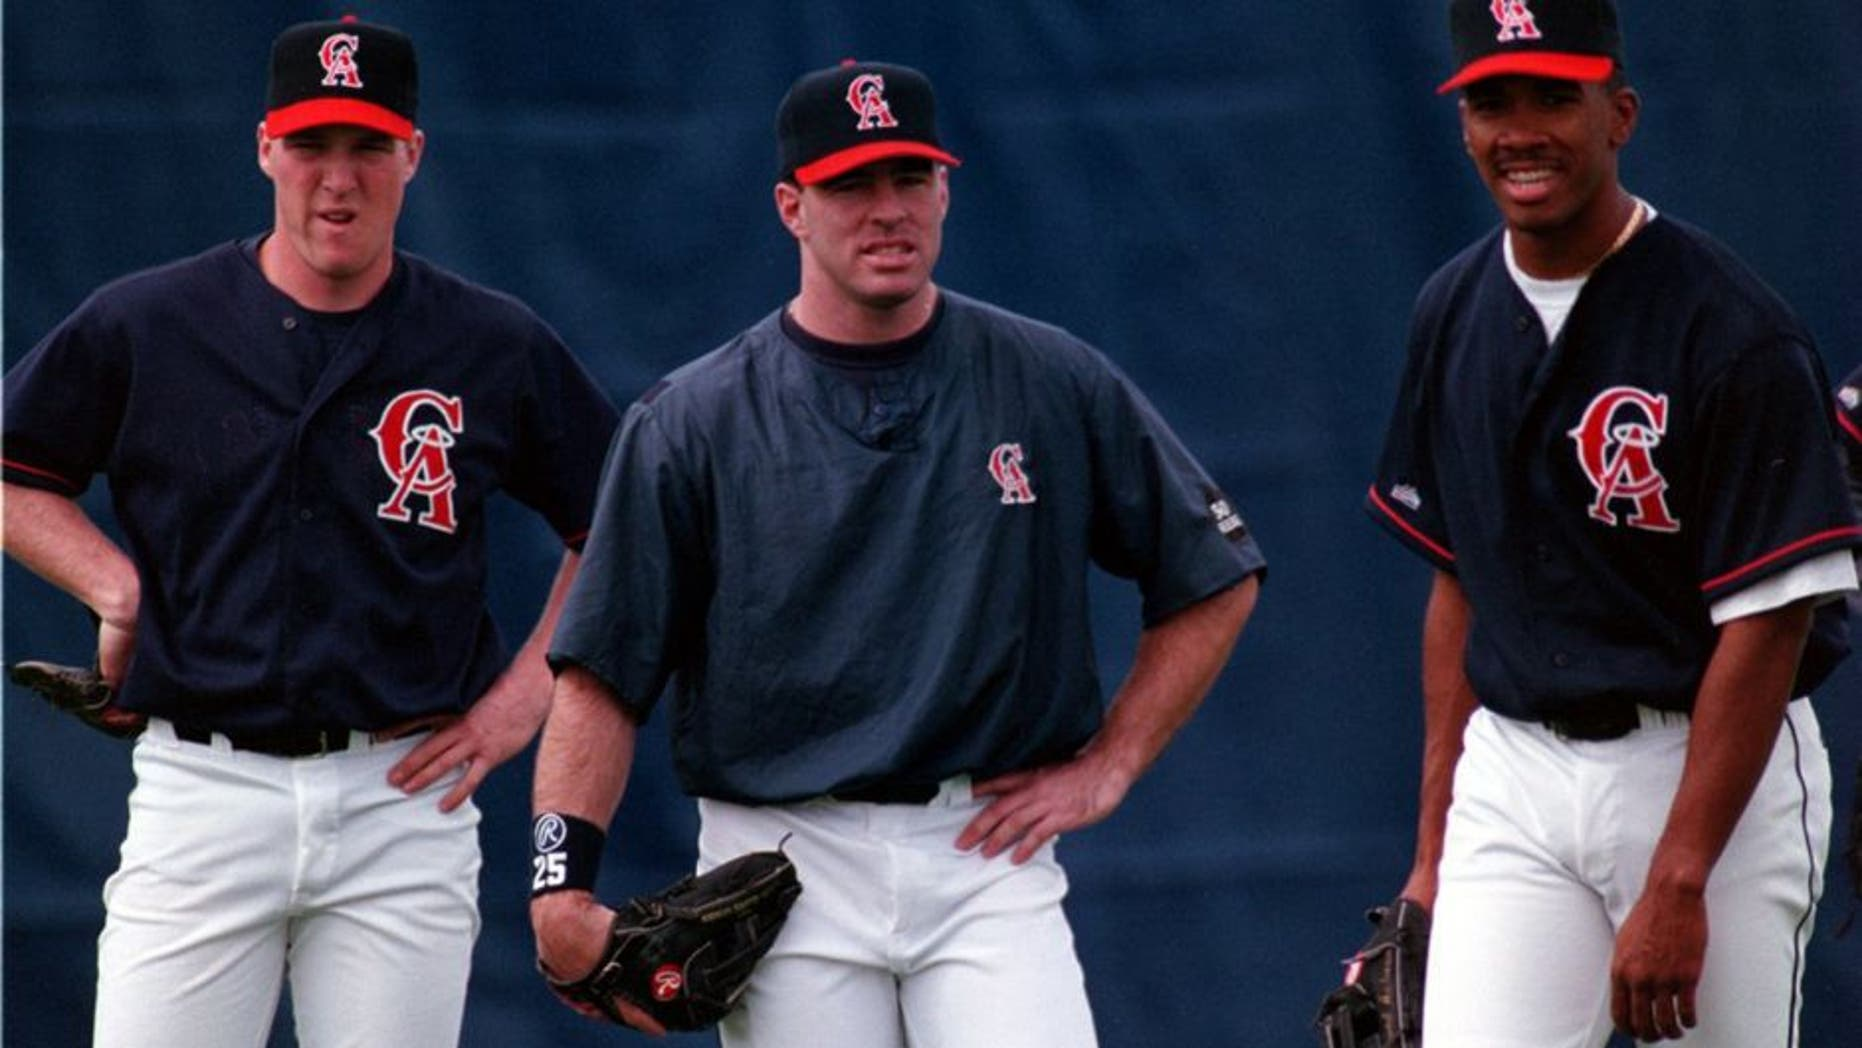 SP.Angel.Outfield.grp.0223.AAGññAngels outfielders during spring training practice (lñR) Darin Erstad, Jim Edmonds, and Garret Anderson. (Photo by Alex Garcia/Los Angeles Times via Getty Images)